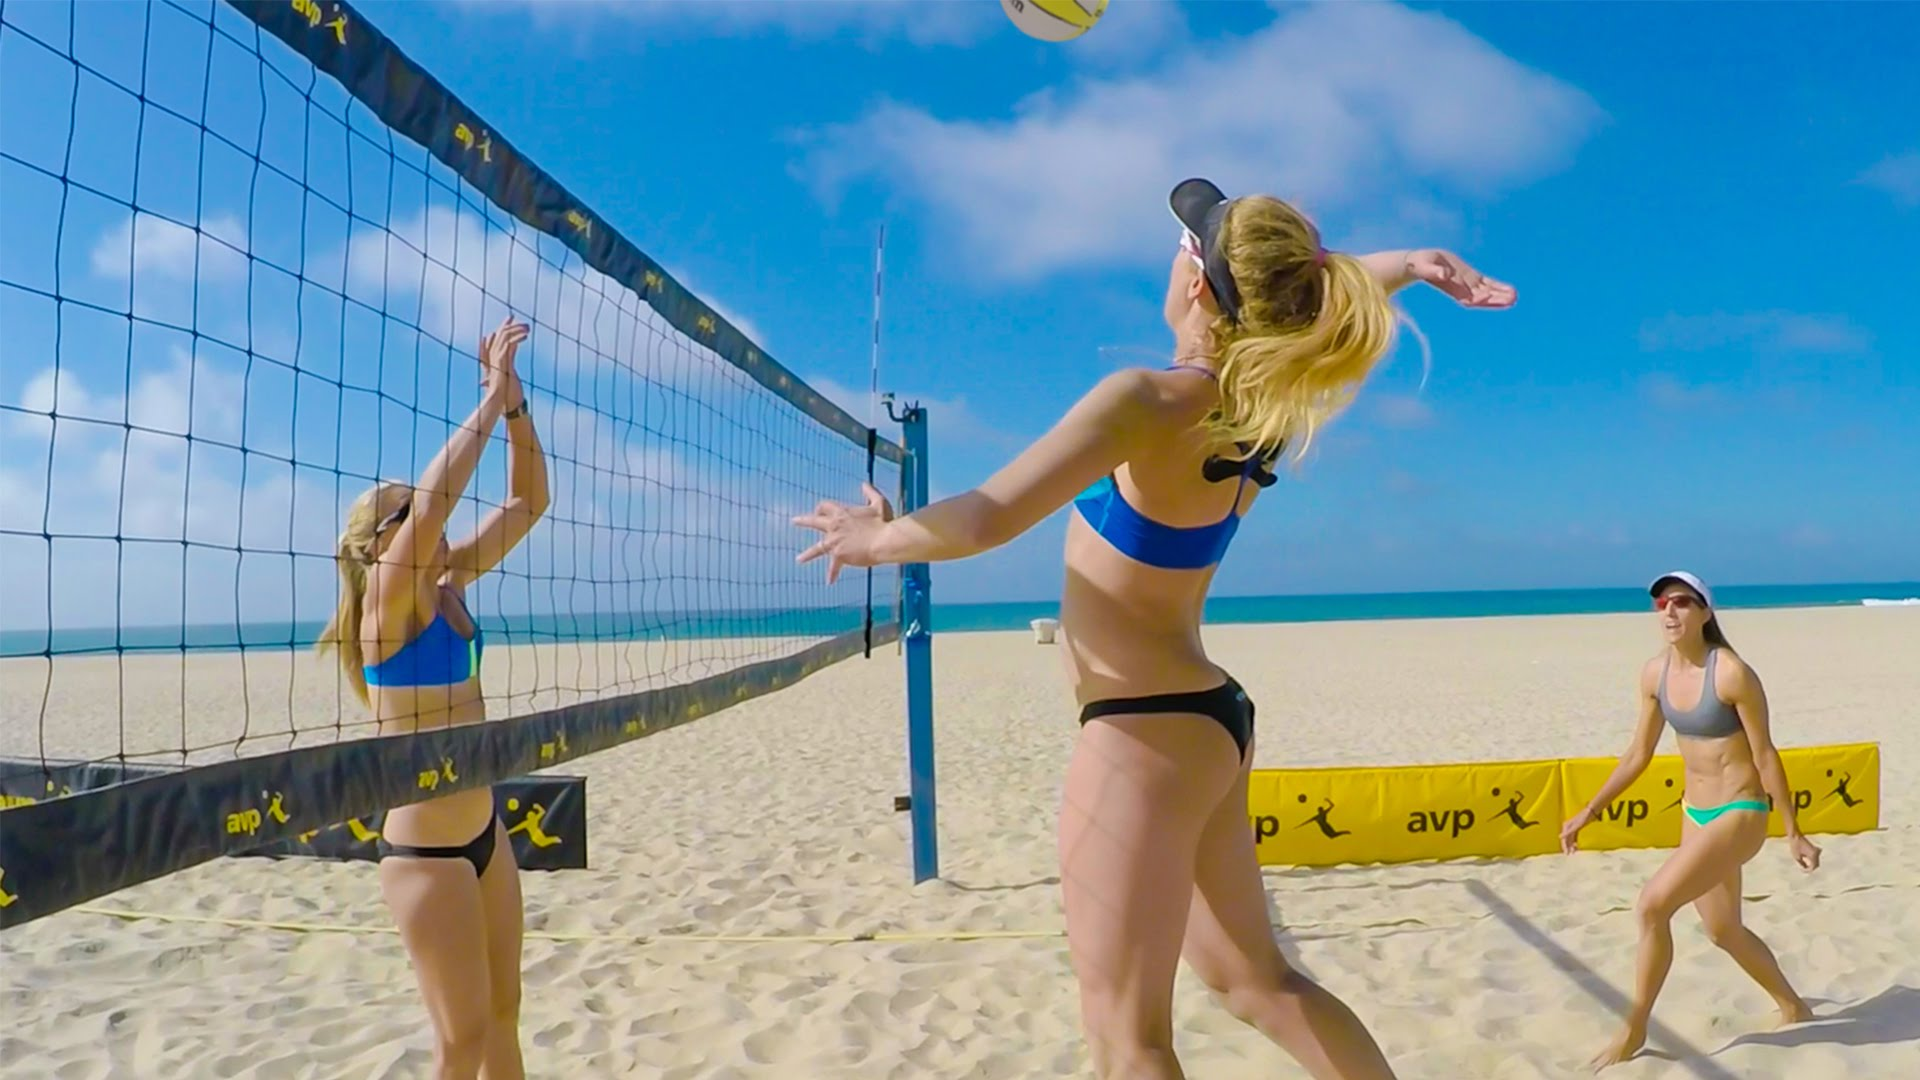 Amazing Beach Volleyball Pictures & Backgrounds